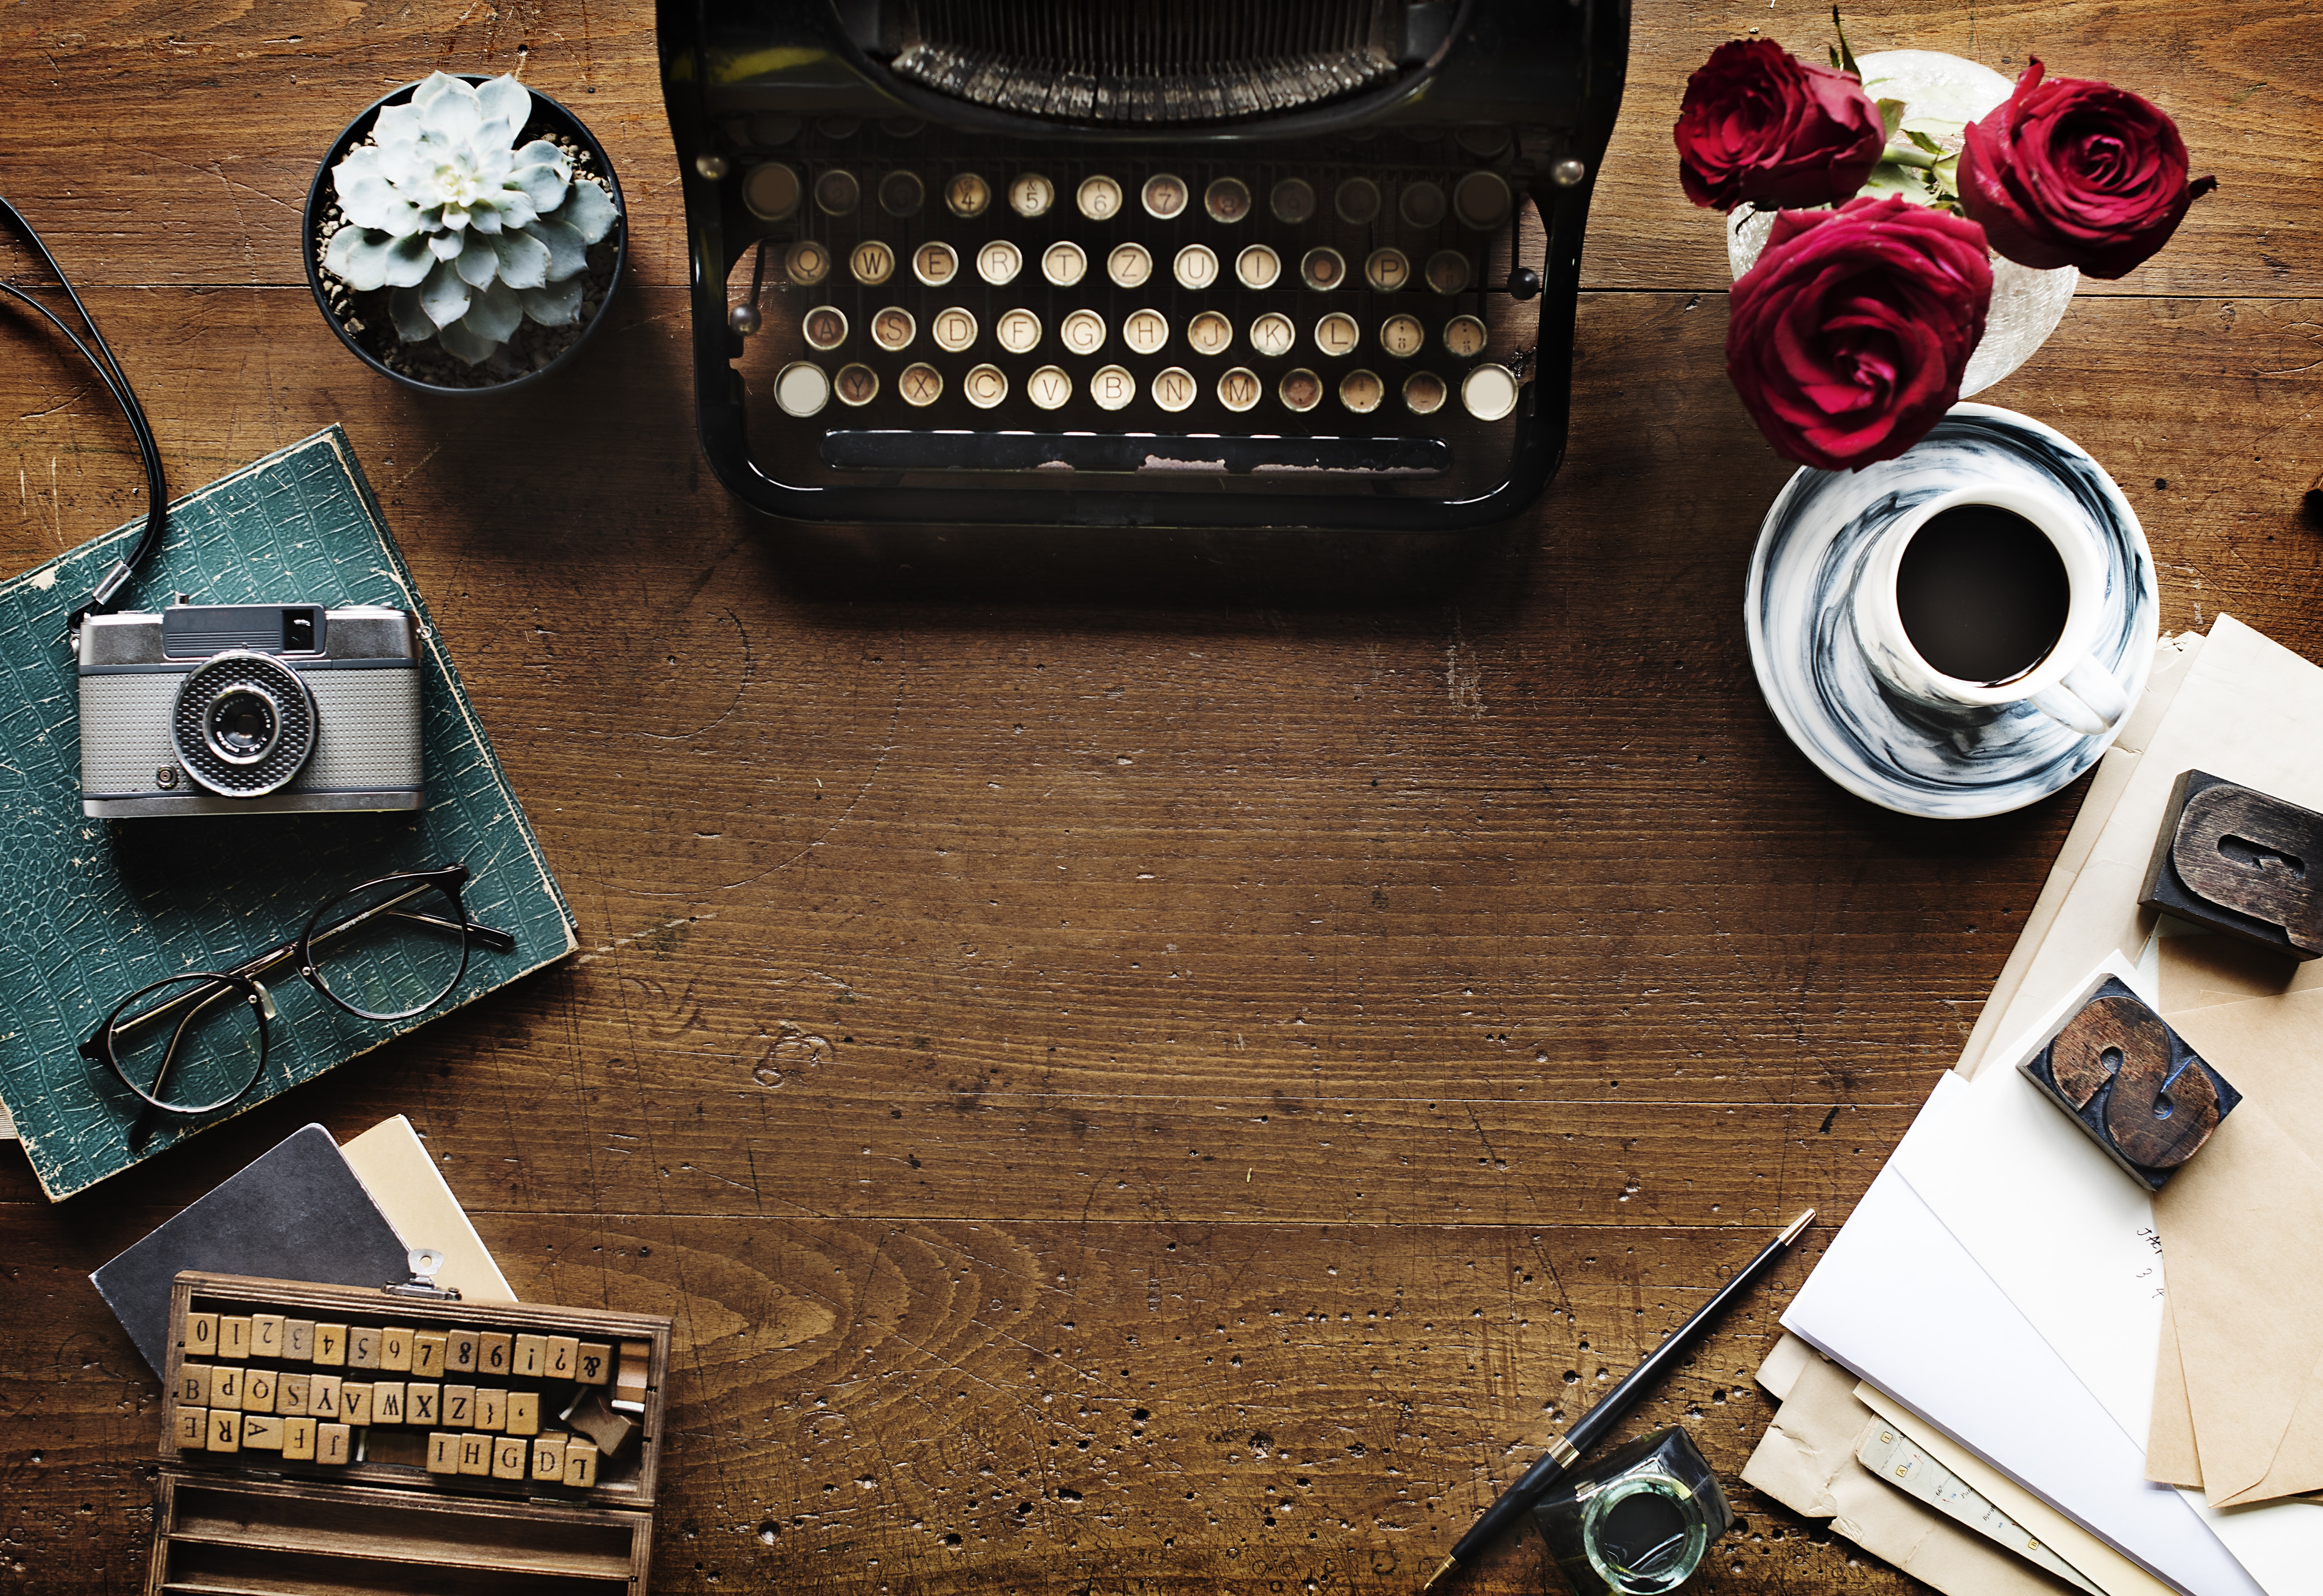 A flatlay with a vintage typewriter, pieces of wooden type, a cup of coffee and red roses